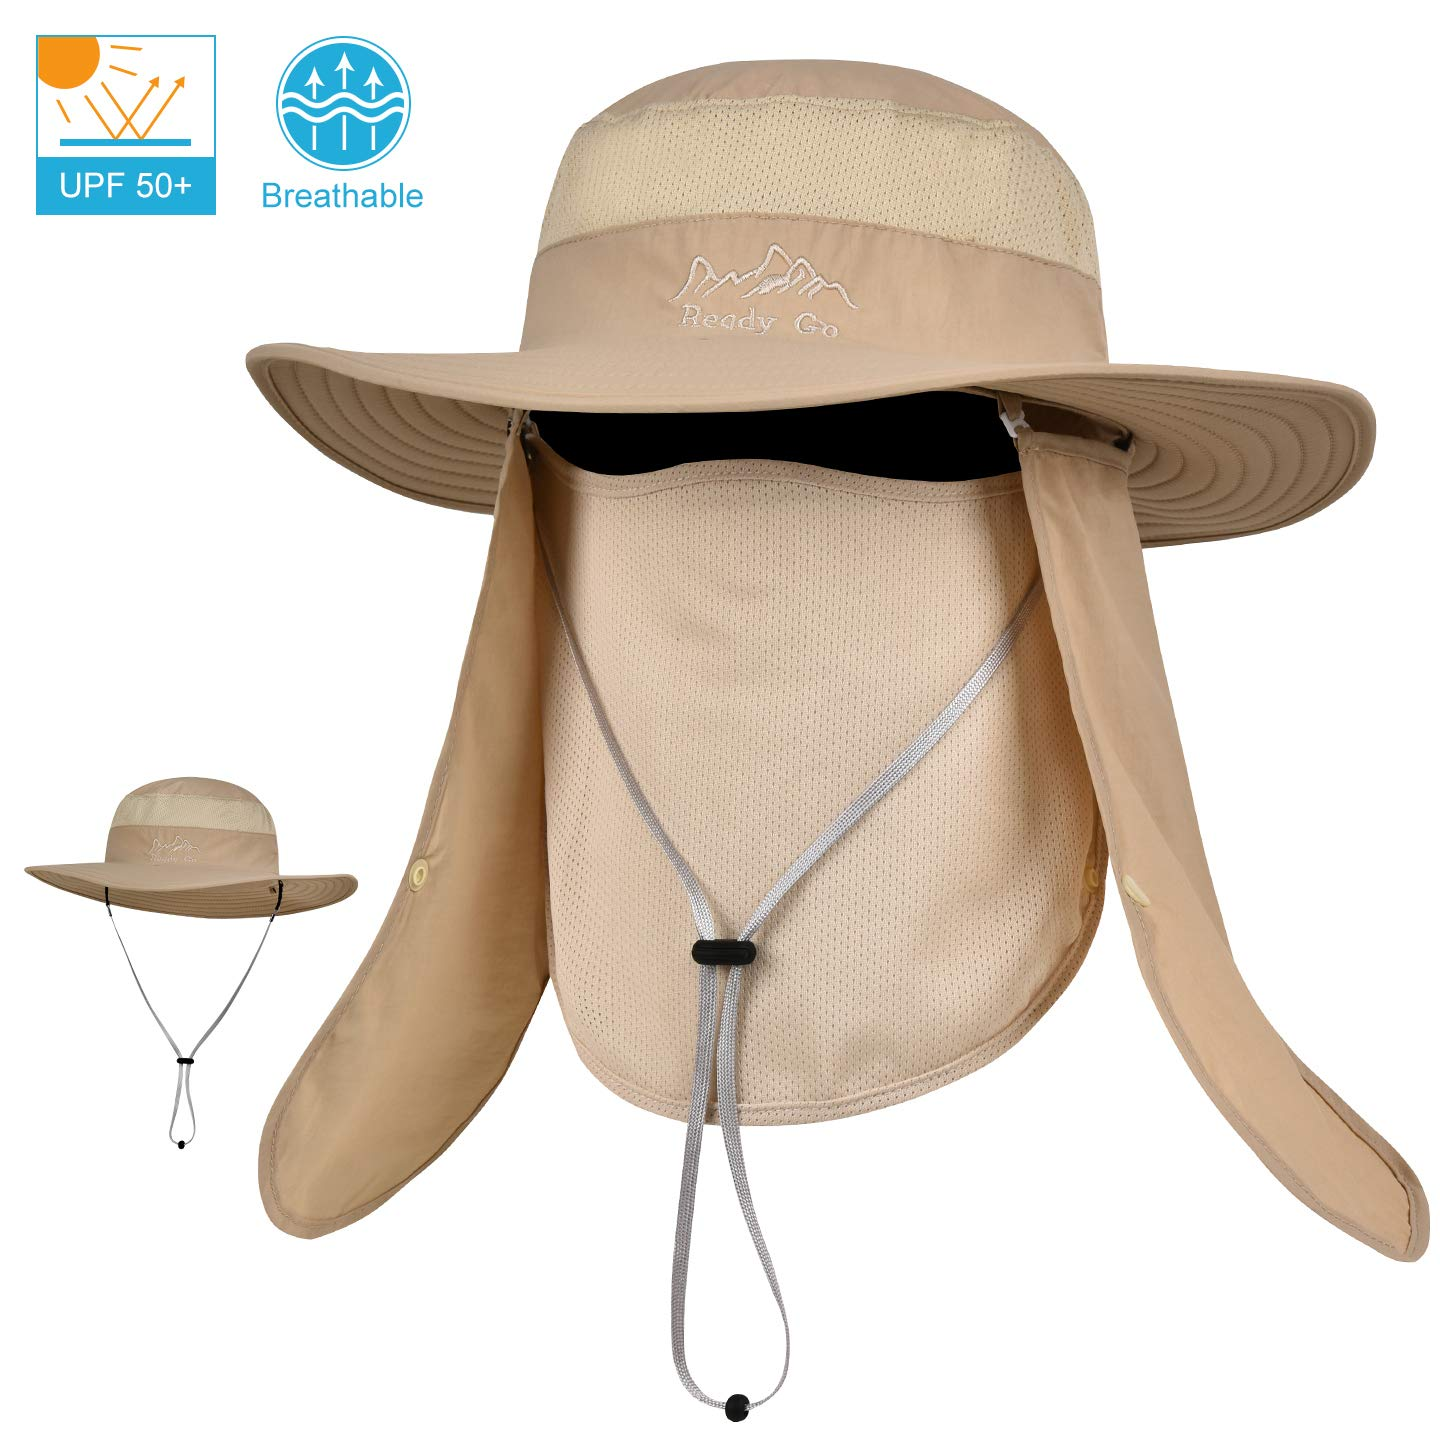 LCZTN Outdoor Sun Cap for Men & Women Breathable Wide Brim Fishing Hat UPF 50+ UV Protection with Removable Face & Neck Flap for Backpacking Hiking Travel Camping Gardening & Boating